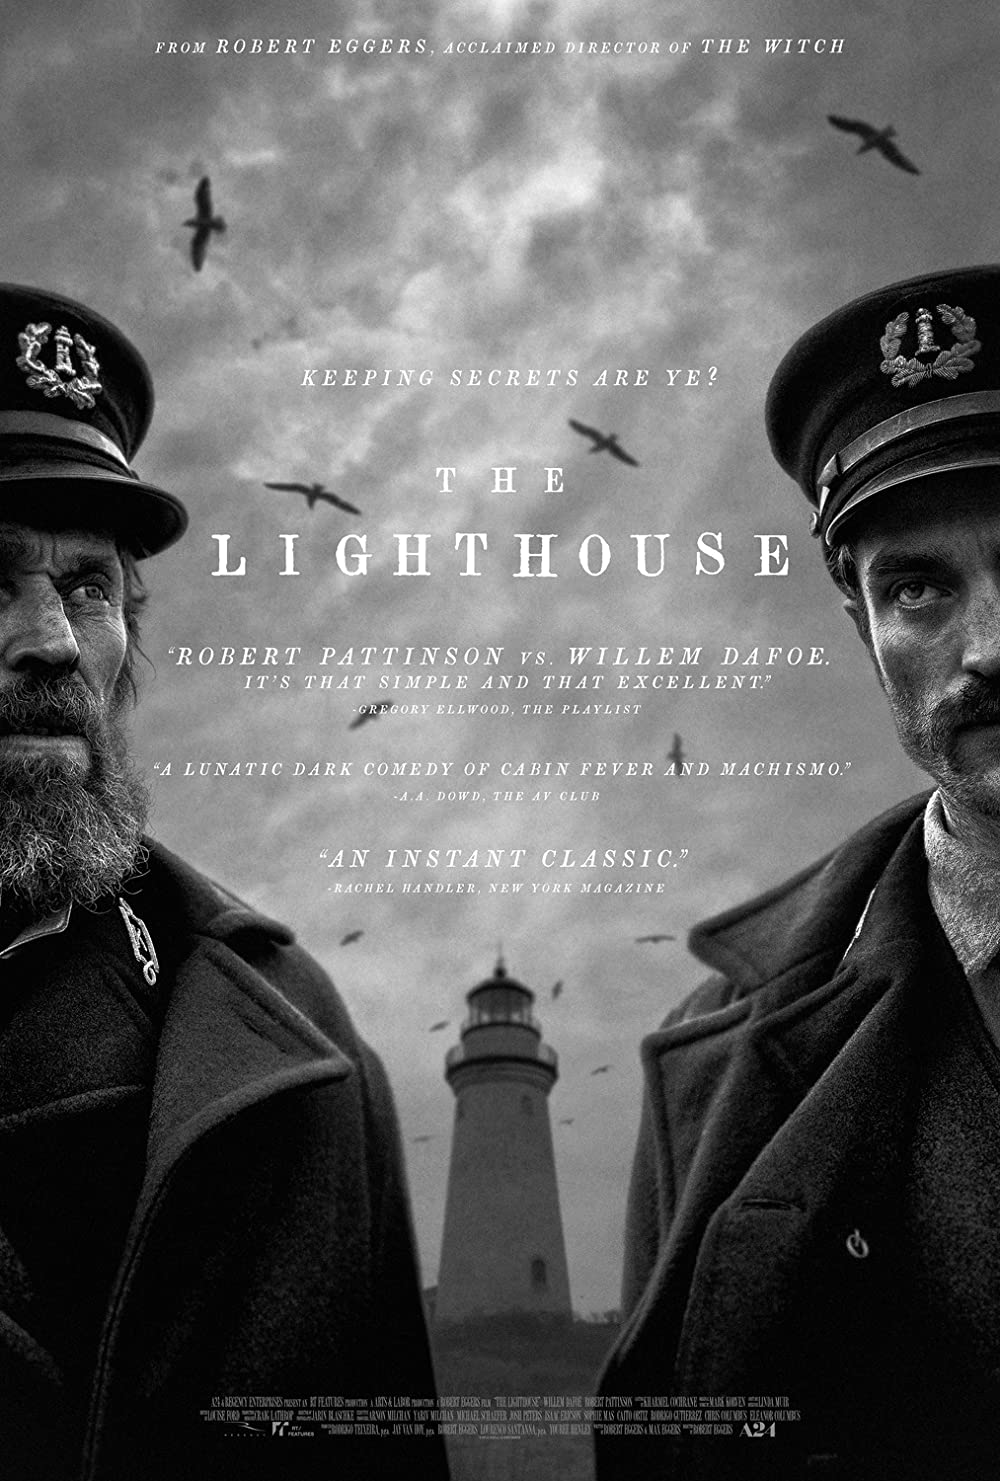 The Lighthouse (2019) 1080p HDRip Hindi ORG Dual Audio Movie NF MSubs [1.6GB]